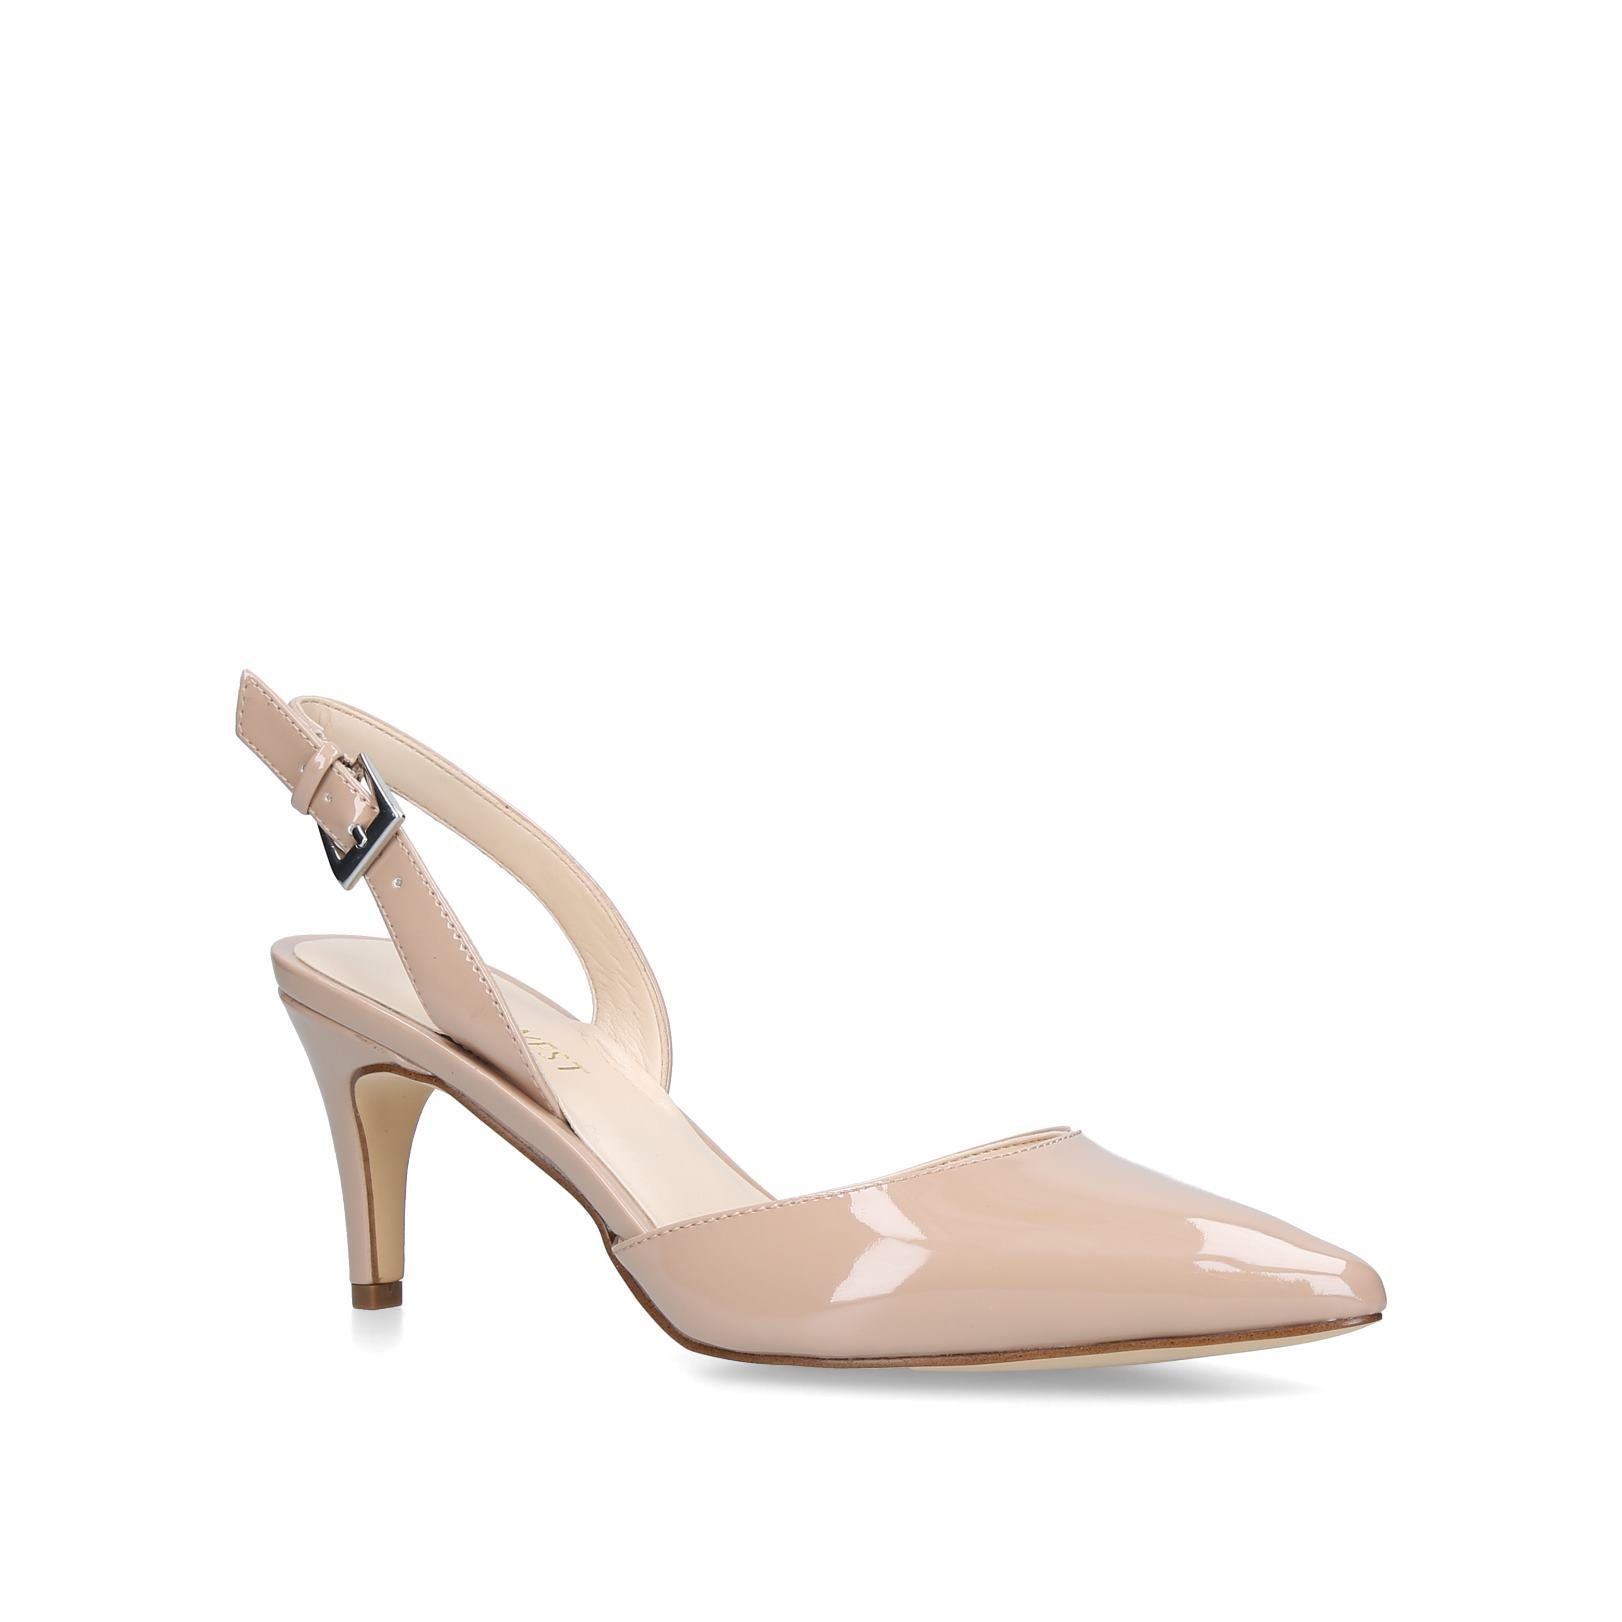 351a5ffc1 EPIPHANY - NINE WEST WAC CONV